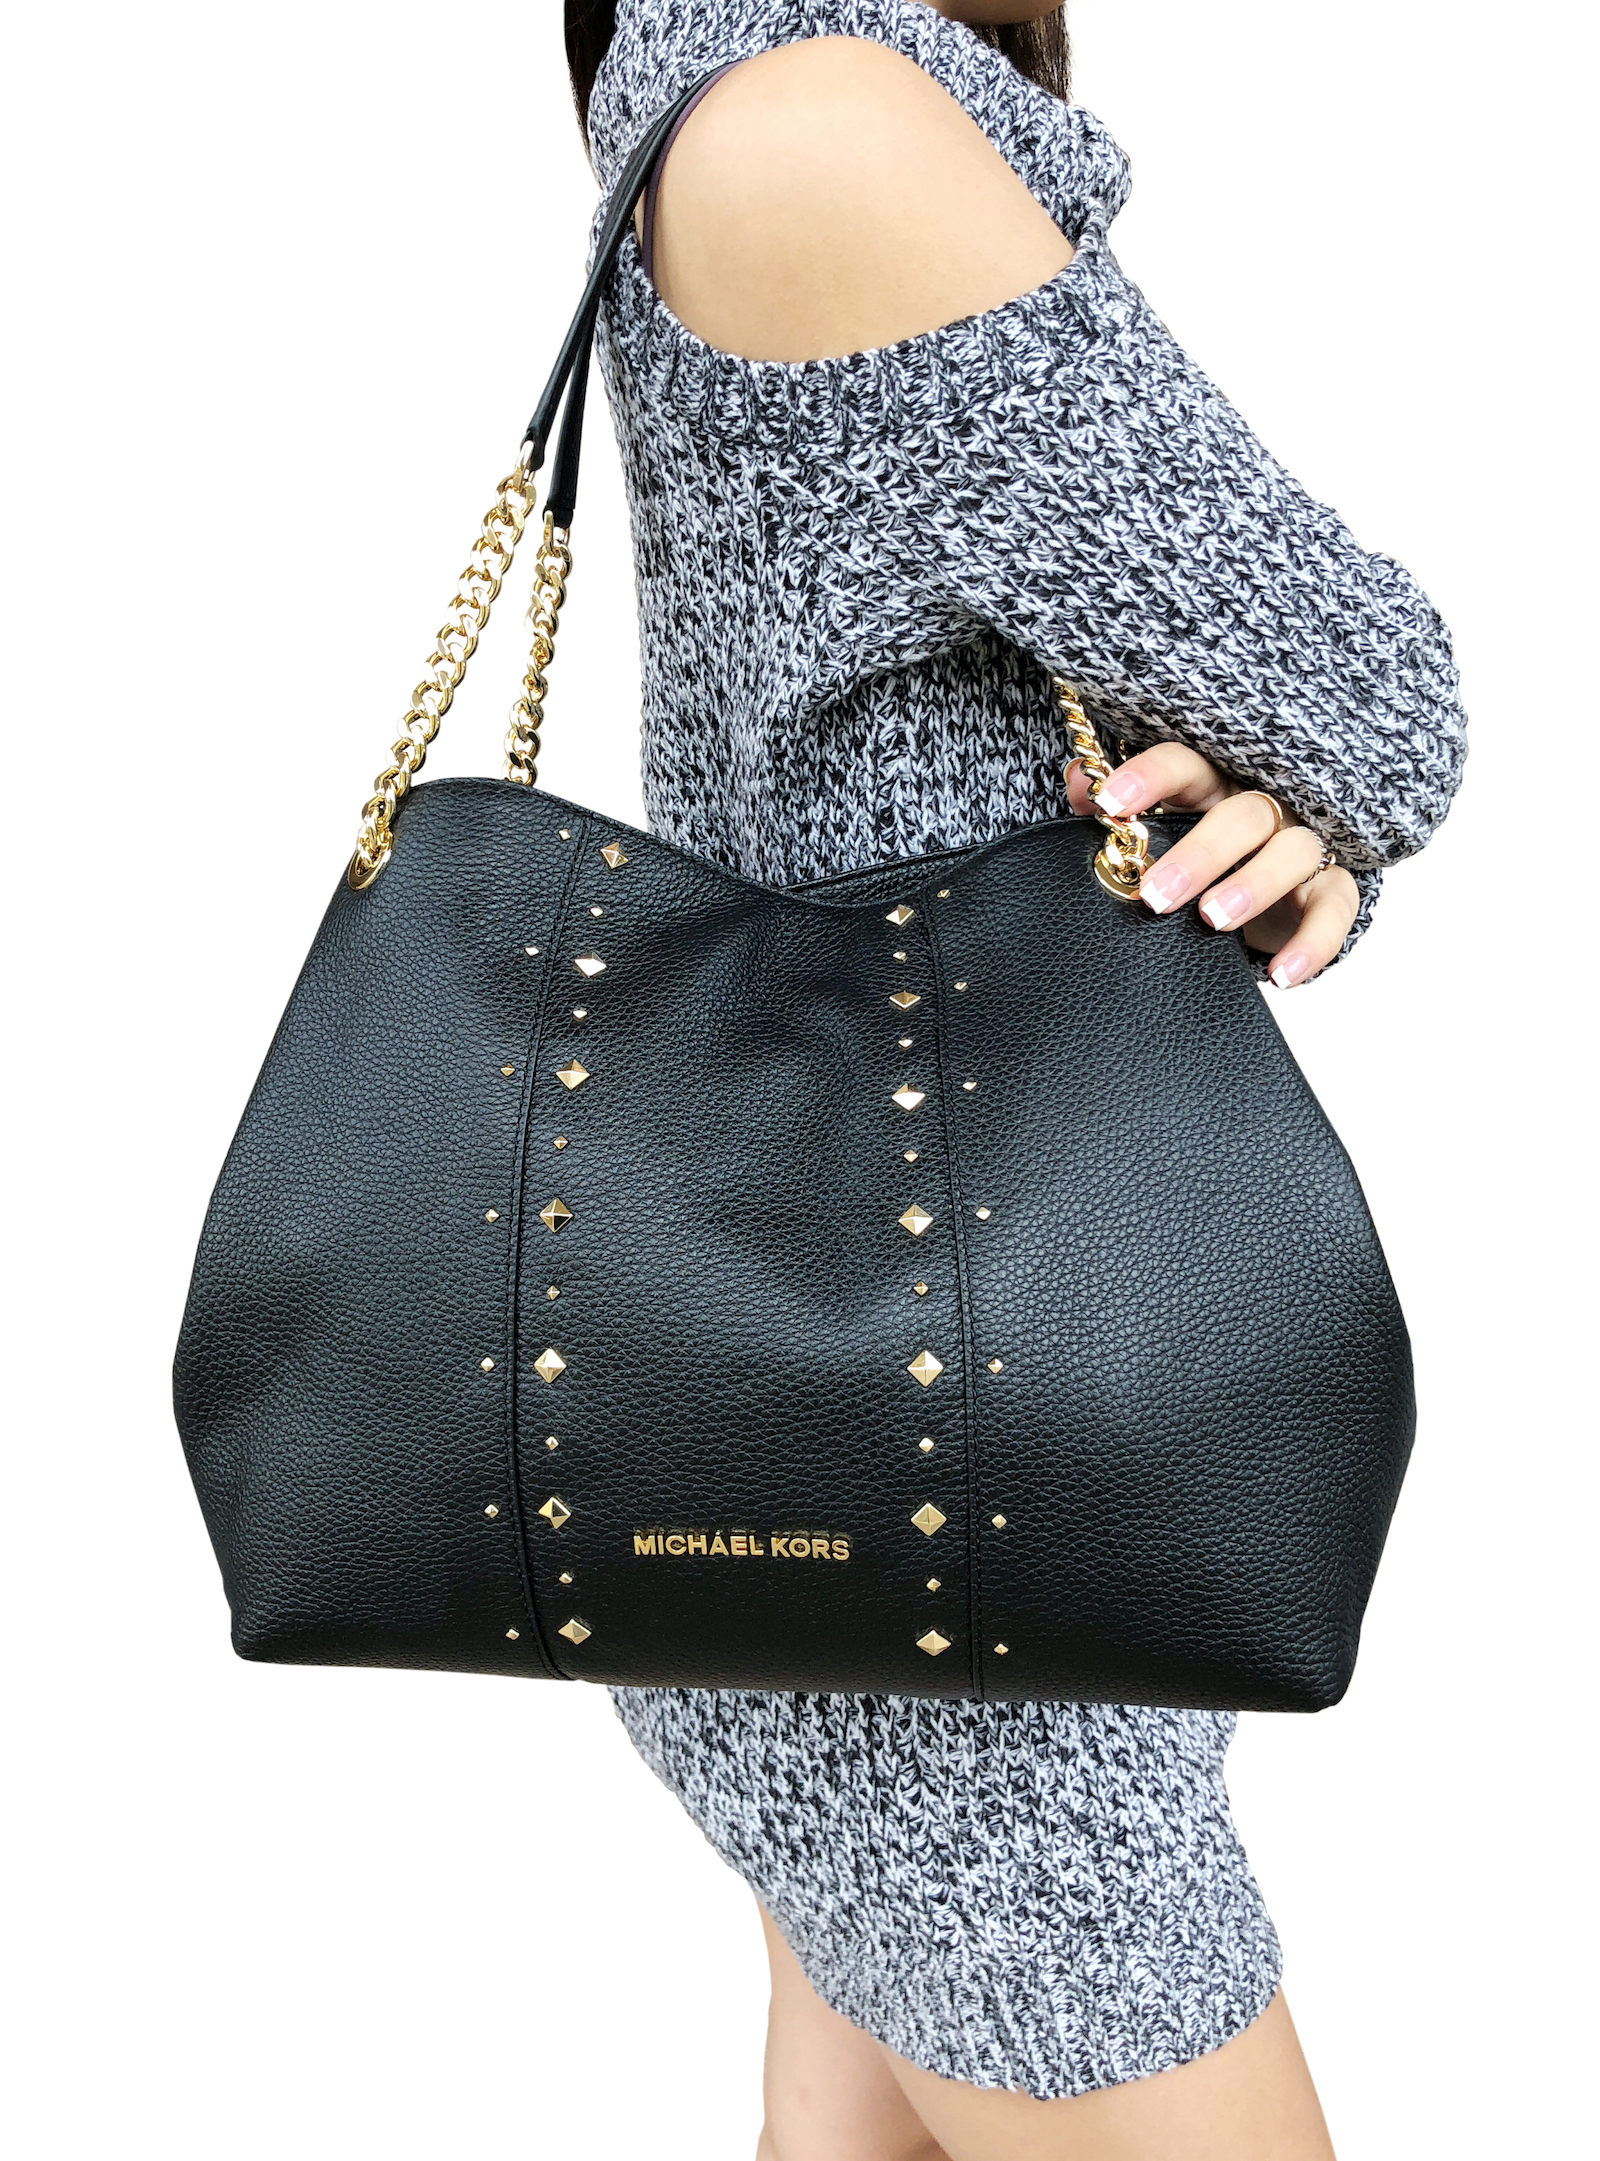 ab8d9b5039b8 Michael Kors Jet Set Large Chain Shoulder Bag Hobo Tote Leather Black Stud